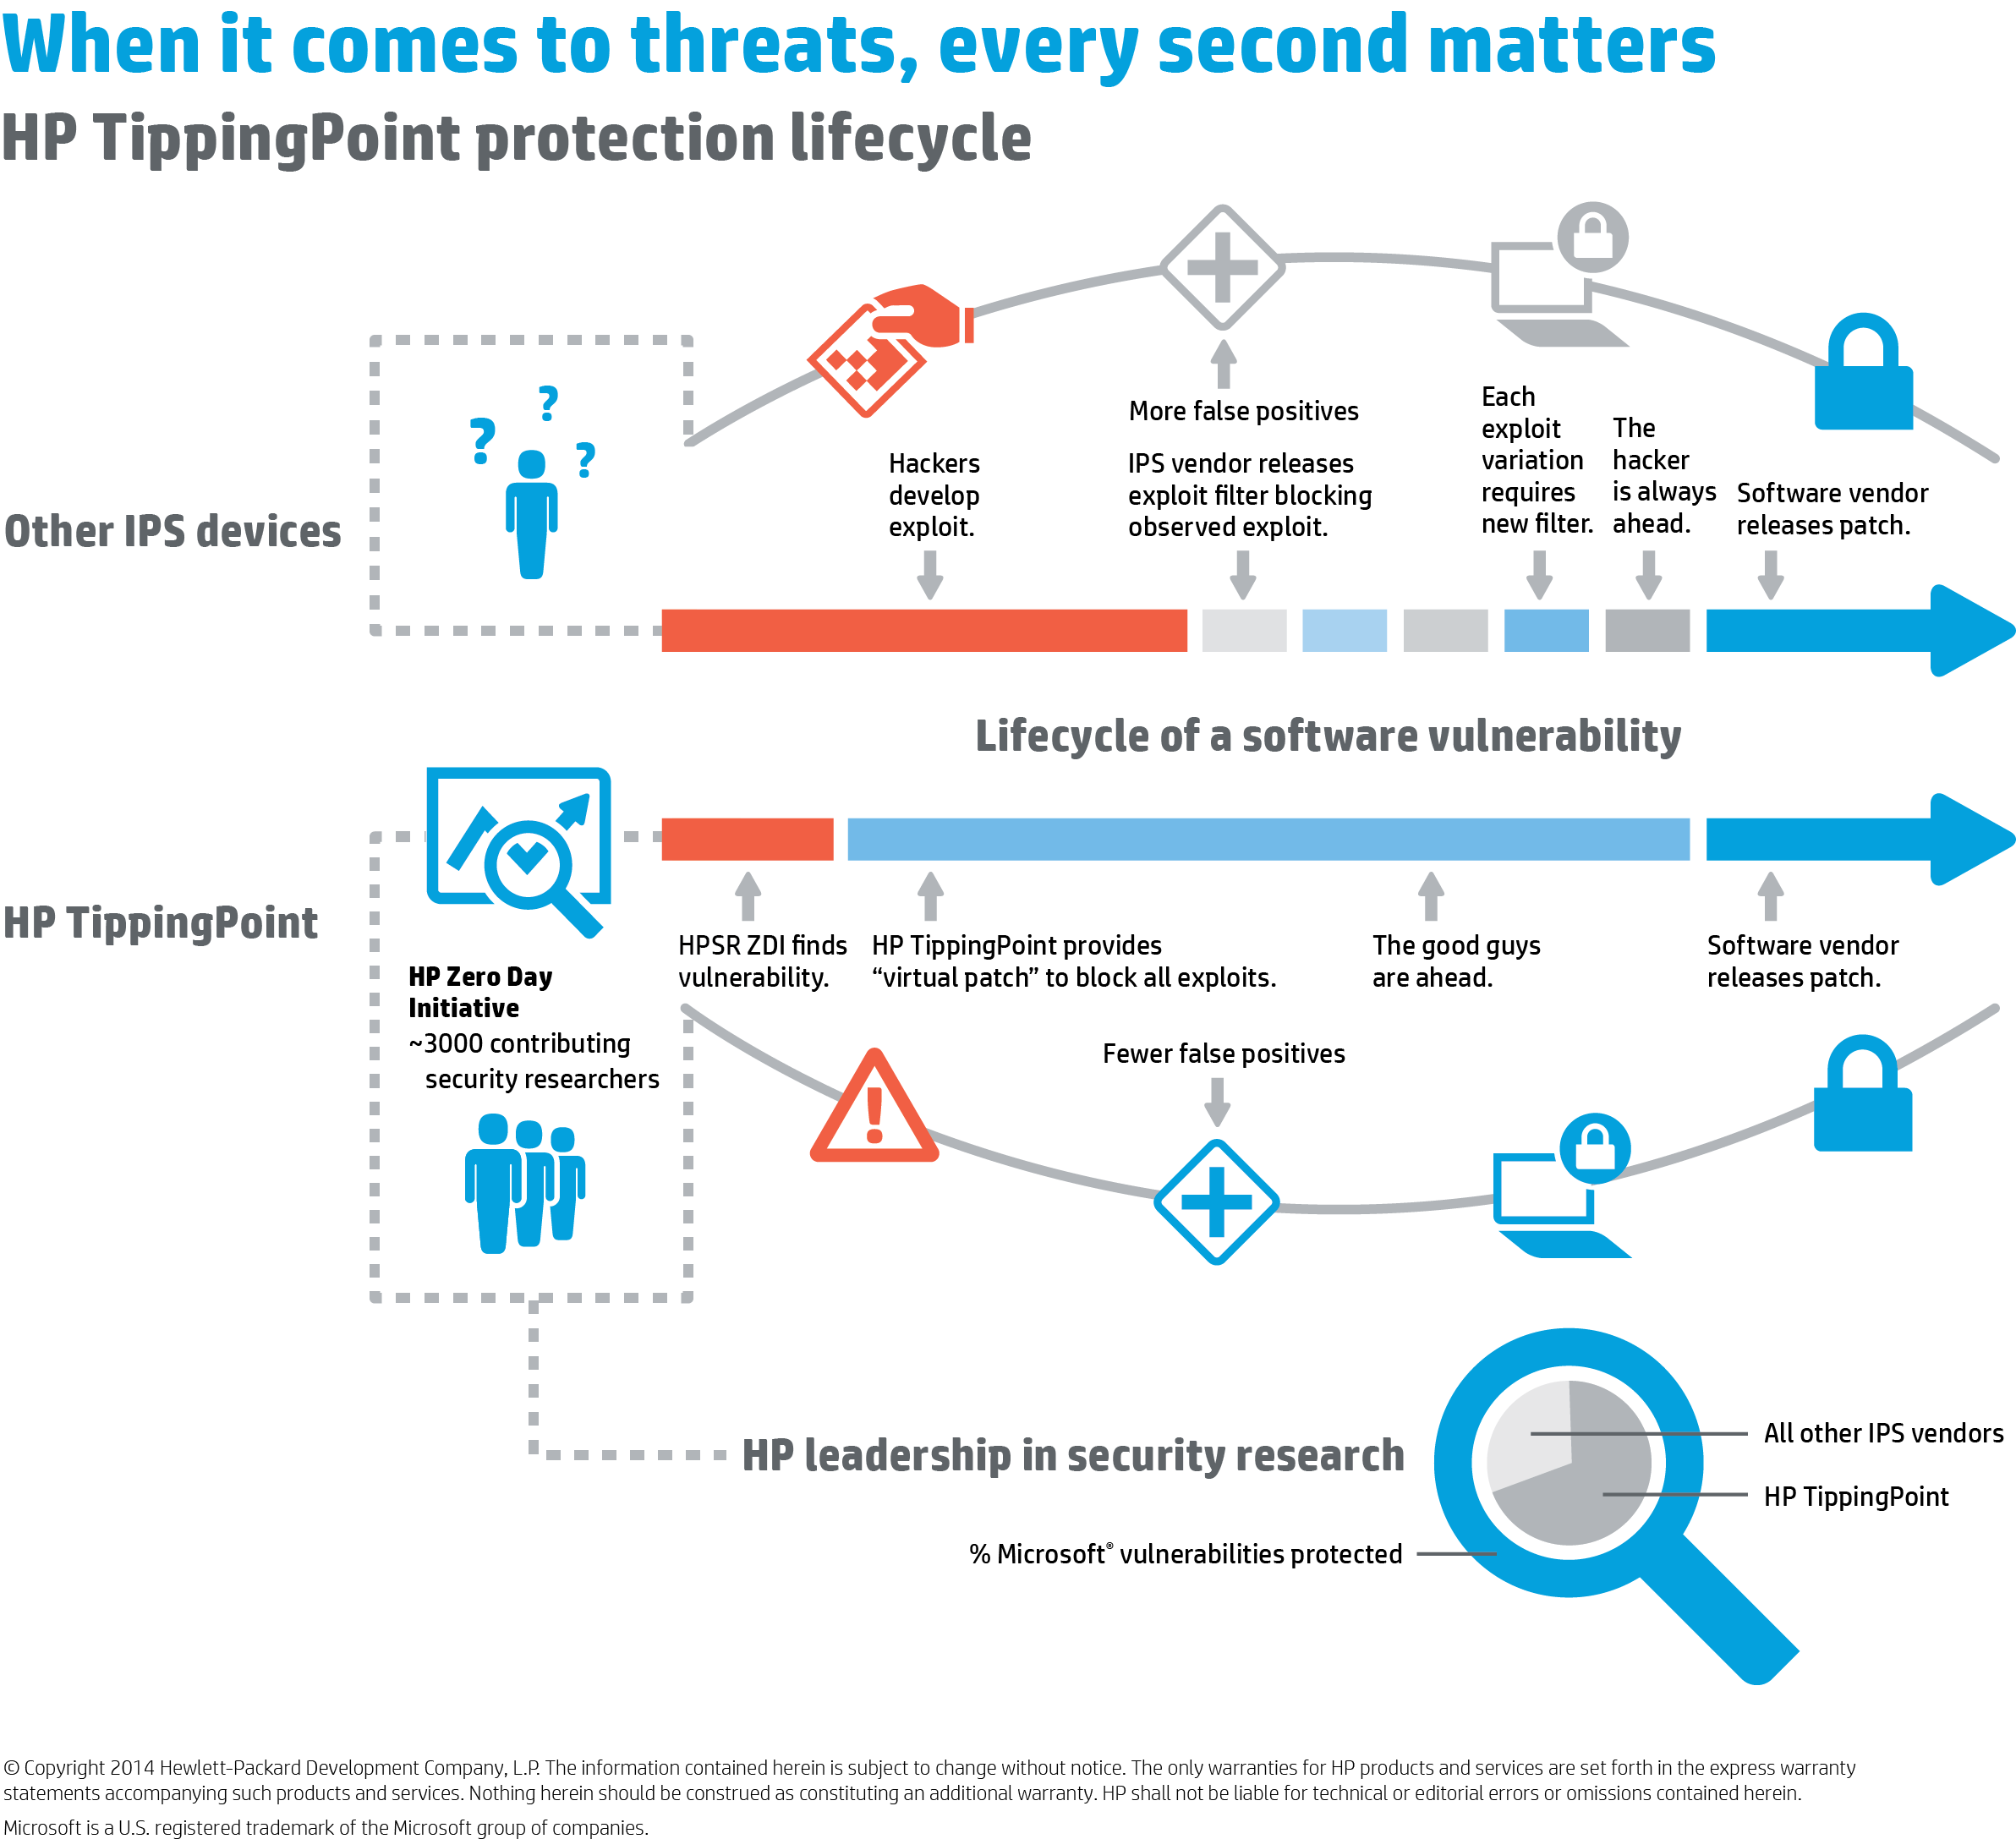 HP TippingPoint Protection Lifecycle Infographic.png